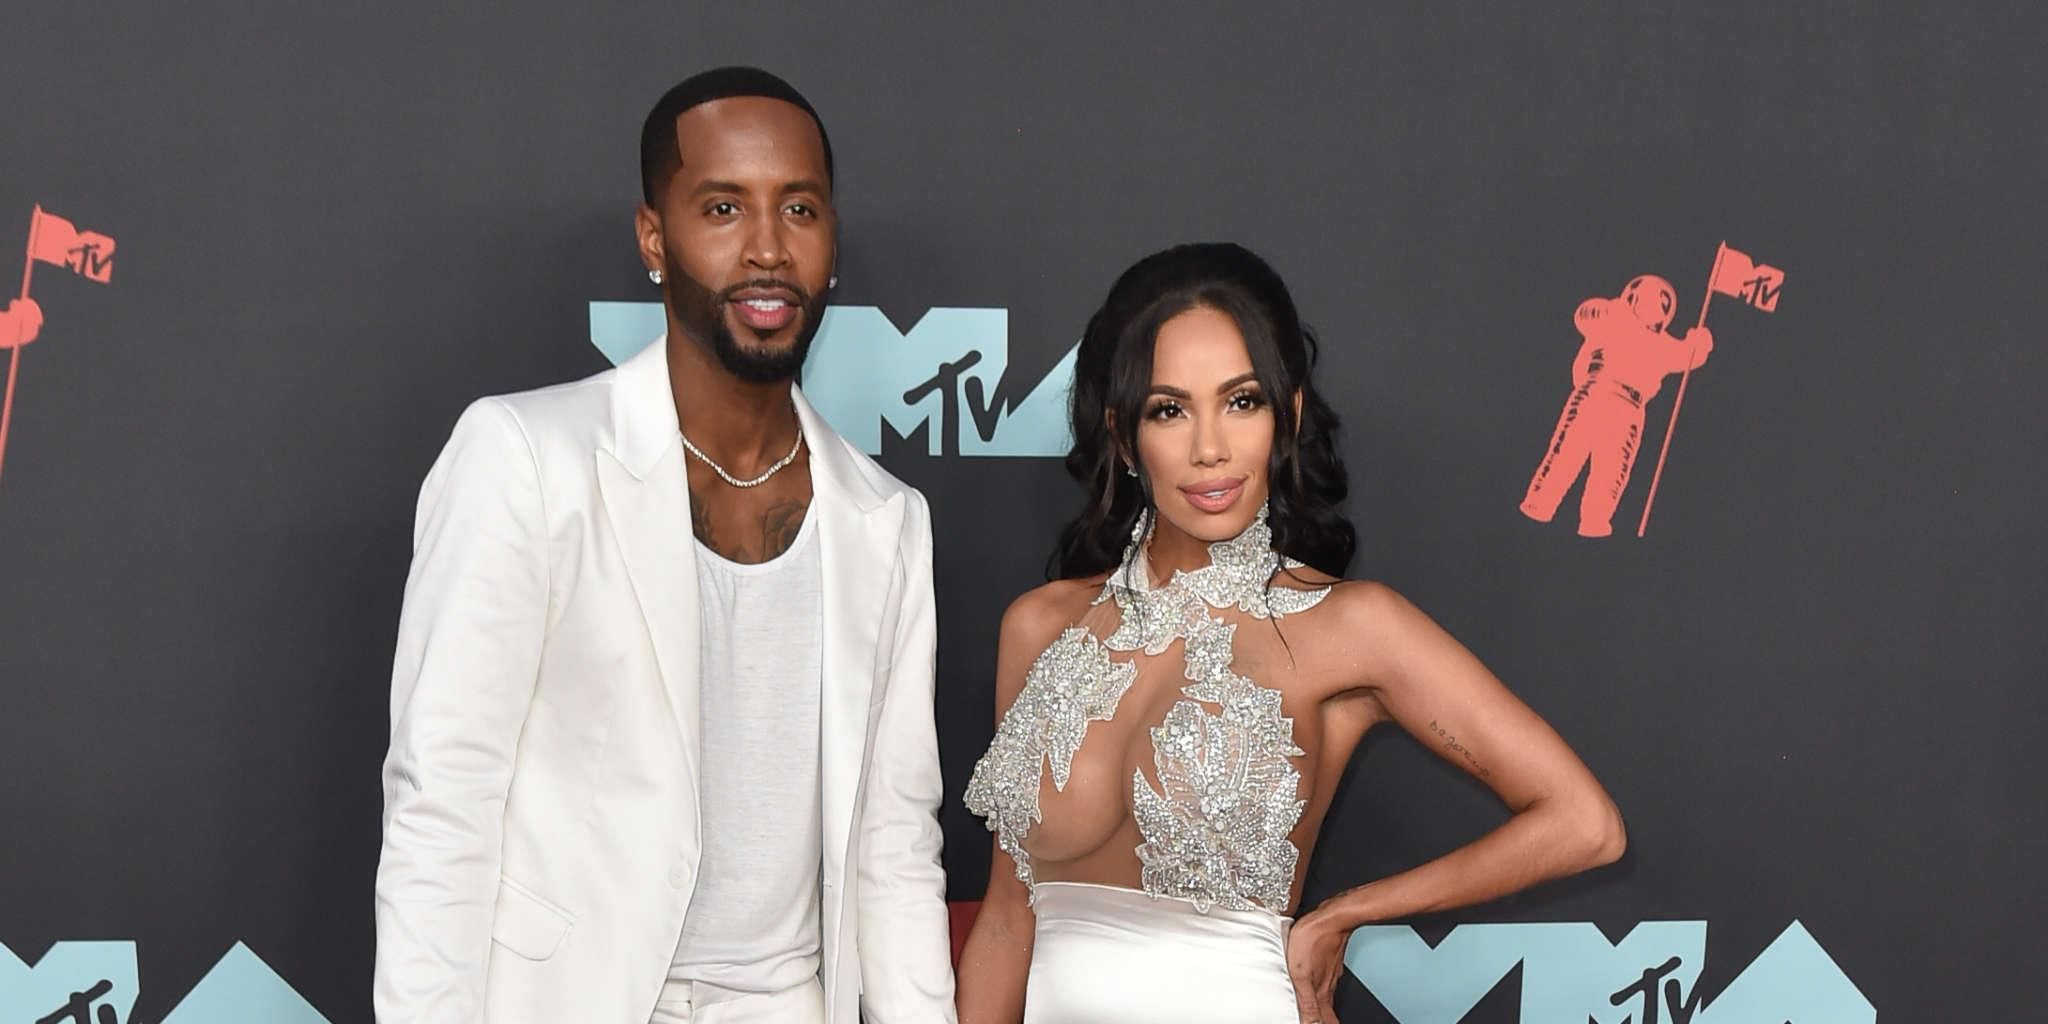 Erica Mena And Safaree Had Their One Year Anniversary - See The Videos And Pics From The Event